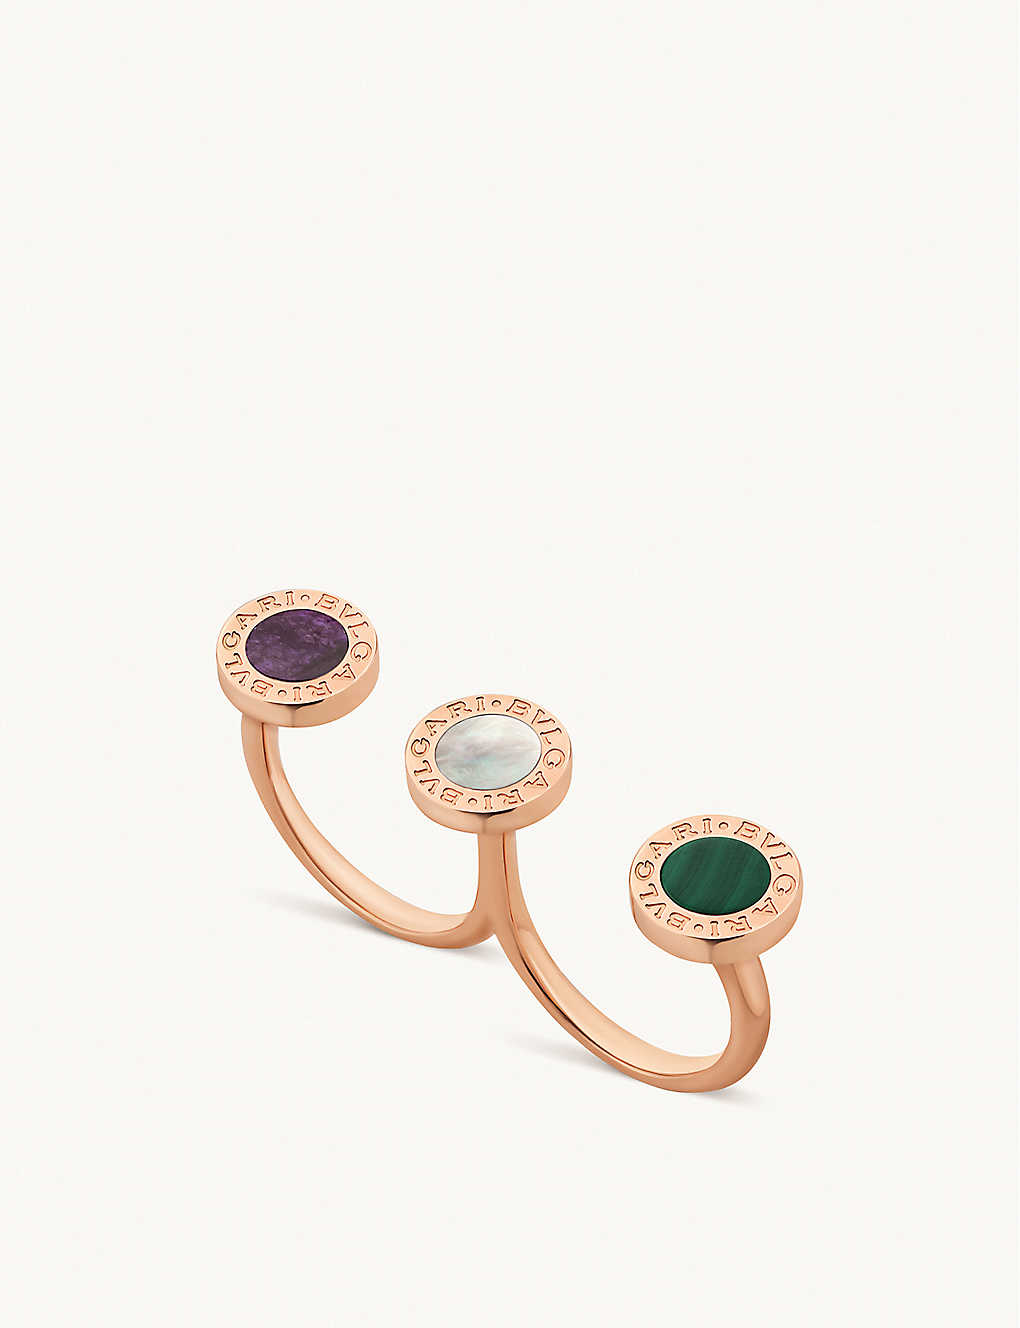 BVLGARI: BVLGARI BVLGARI 18ct rose-gold and mother-of-pearl ring